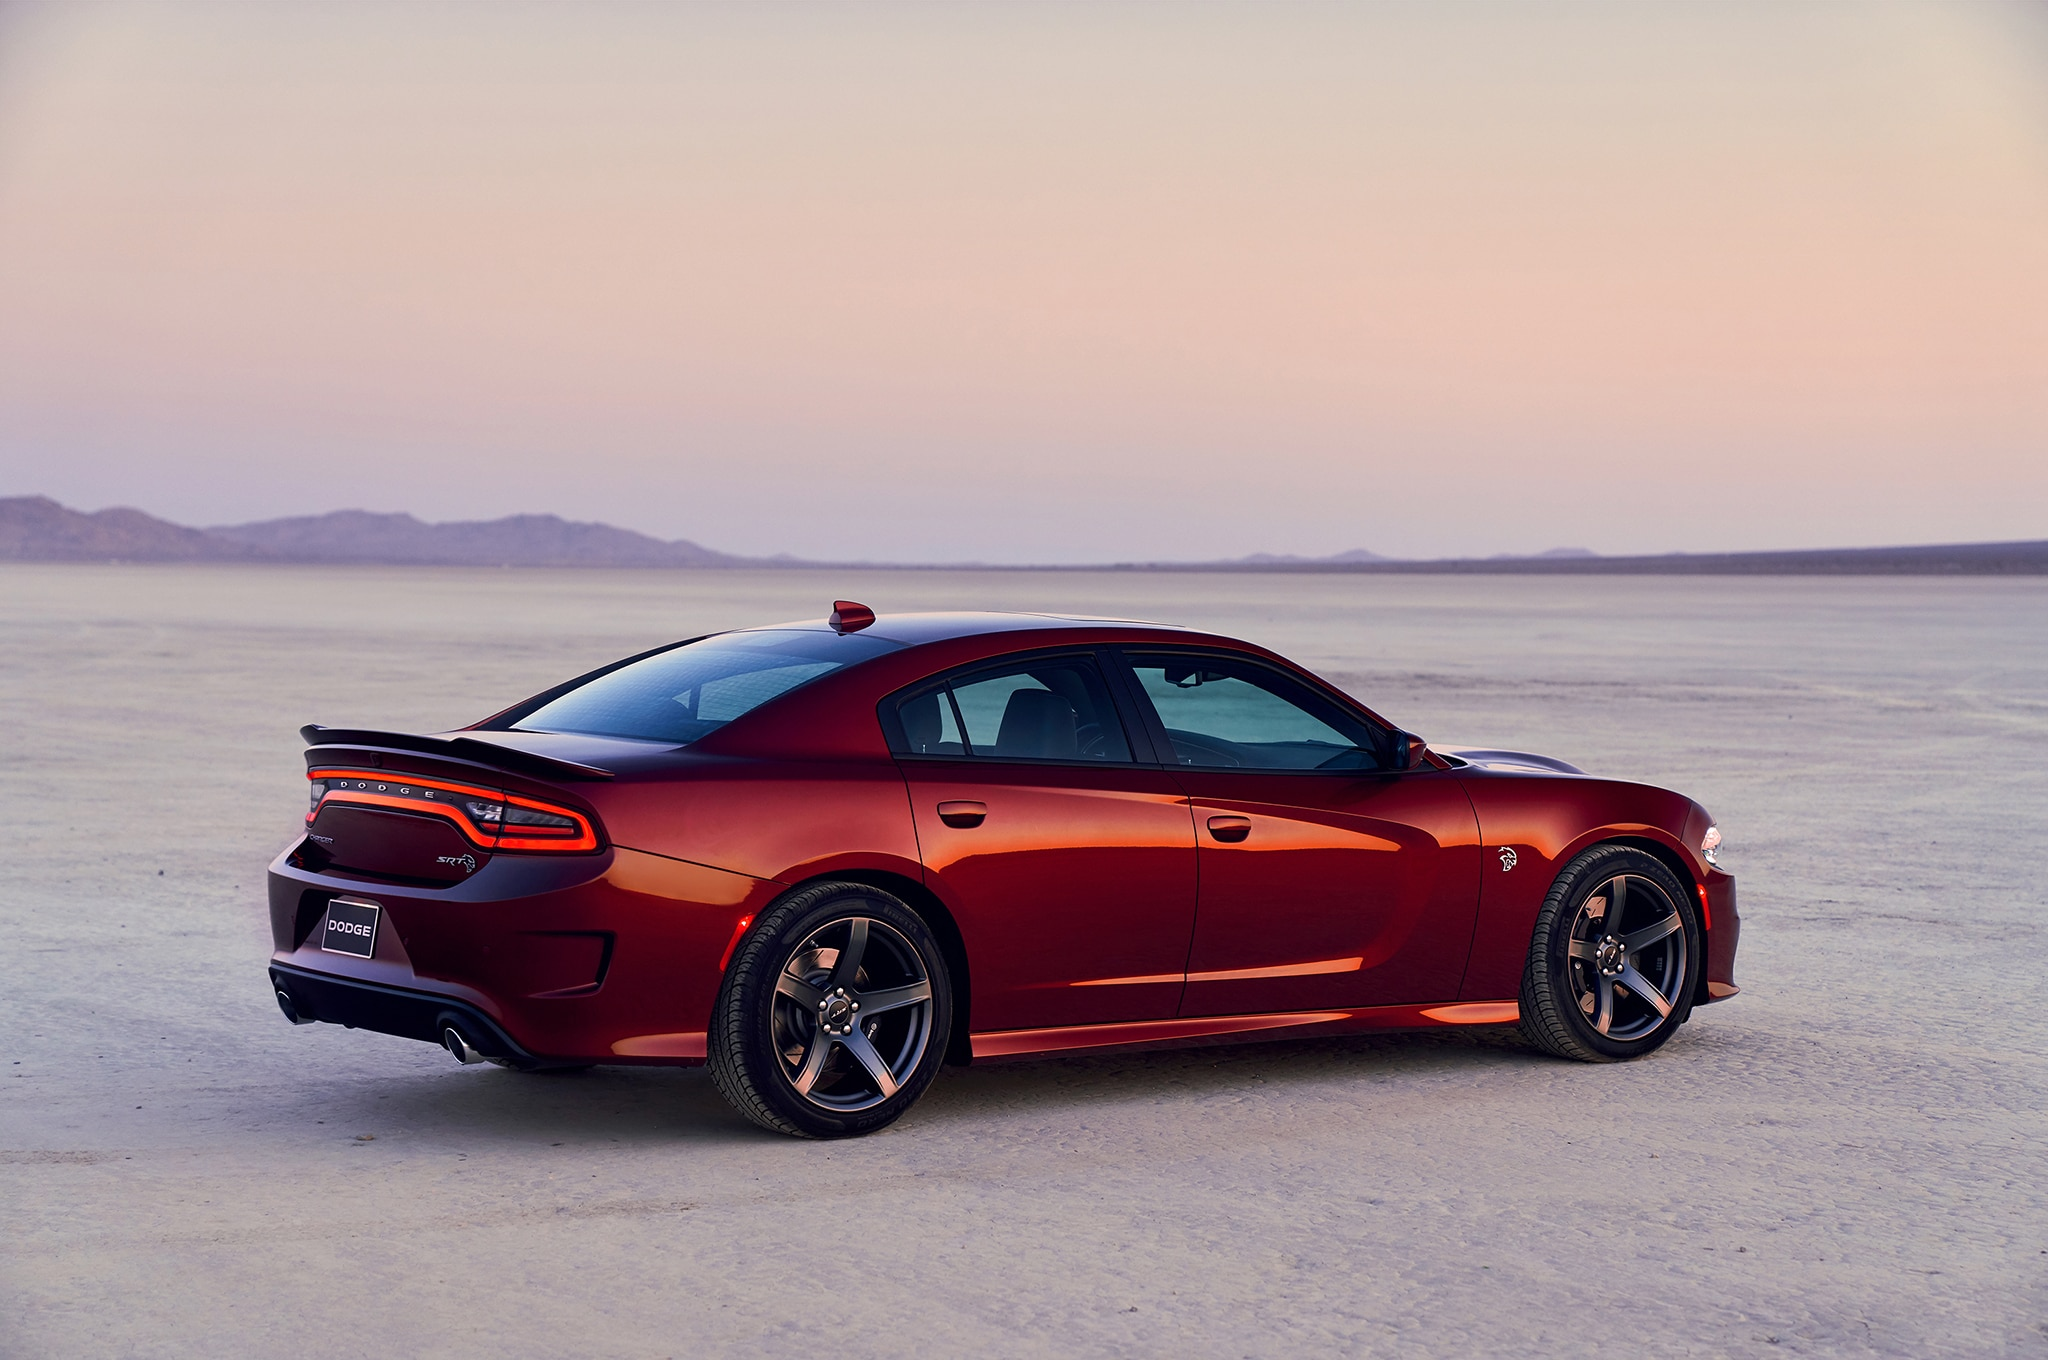 2019 Dodge Charger Sports New Grille and More Flair